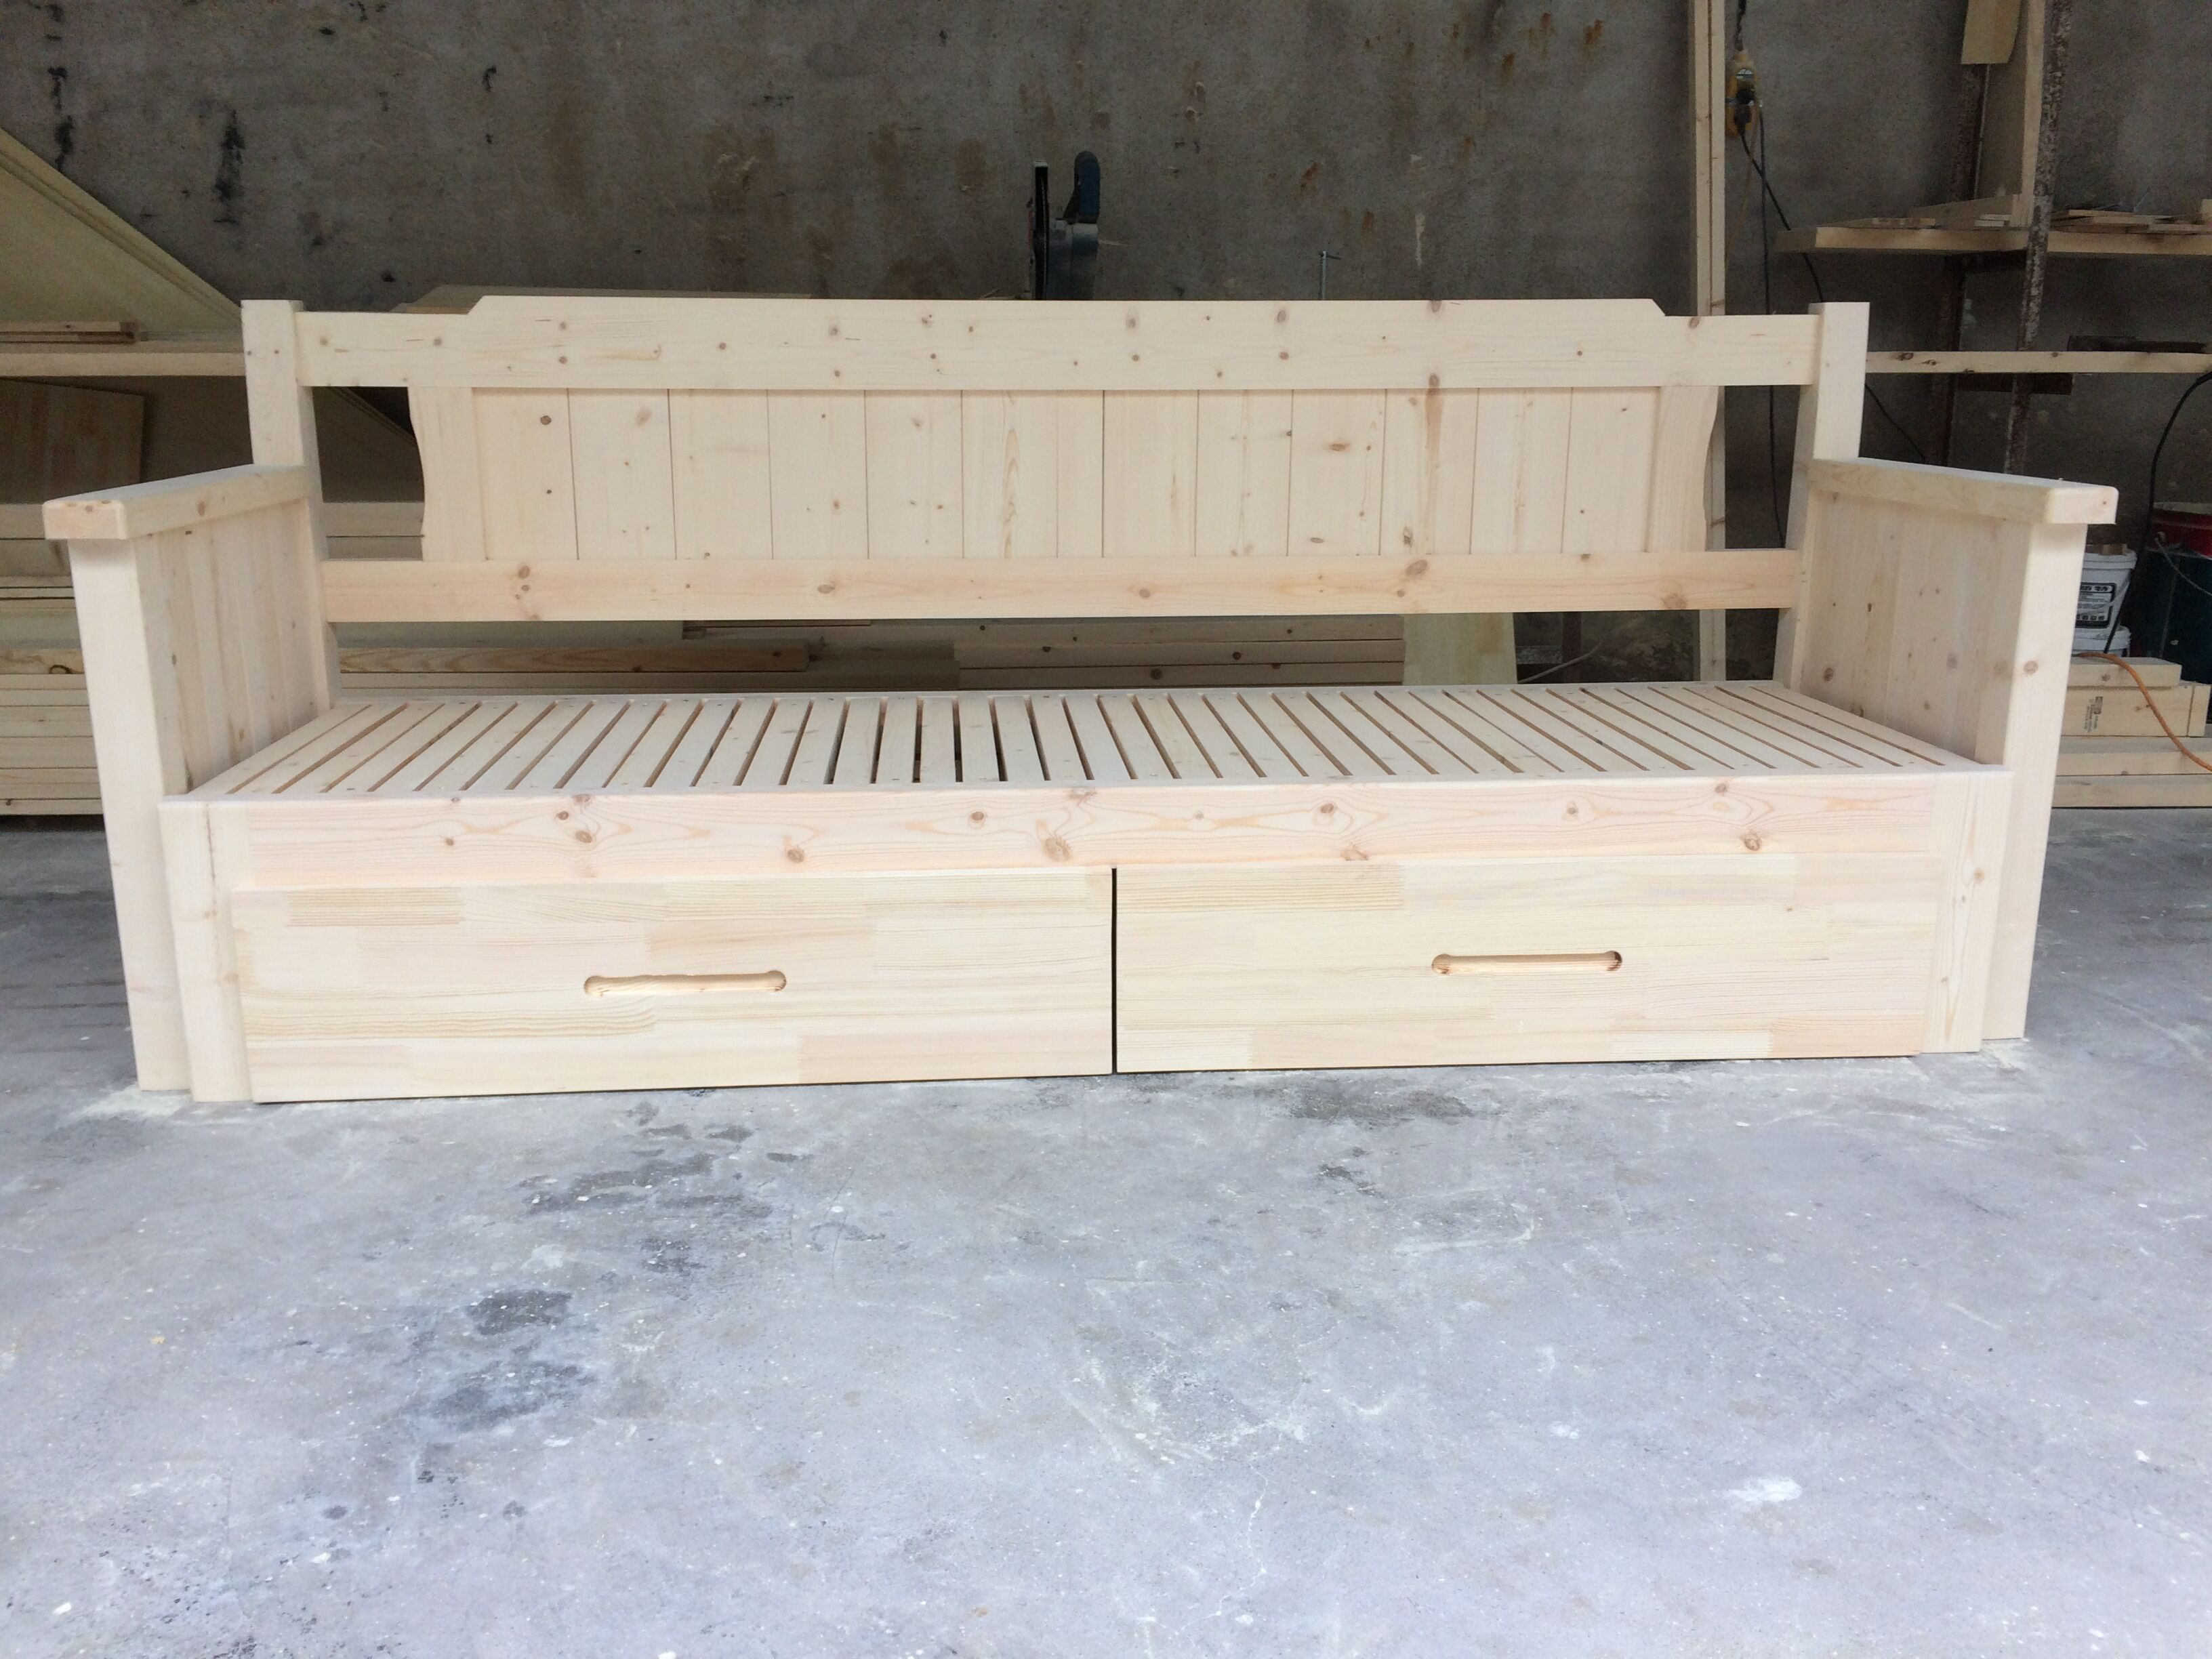 National parcel limited promotional boutique solid wood sofa bed pine European push pull storage 1.21.51.8 customized